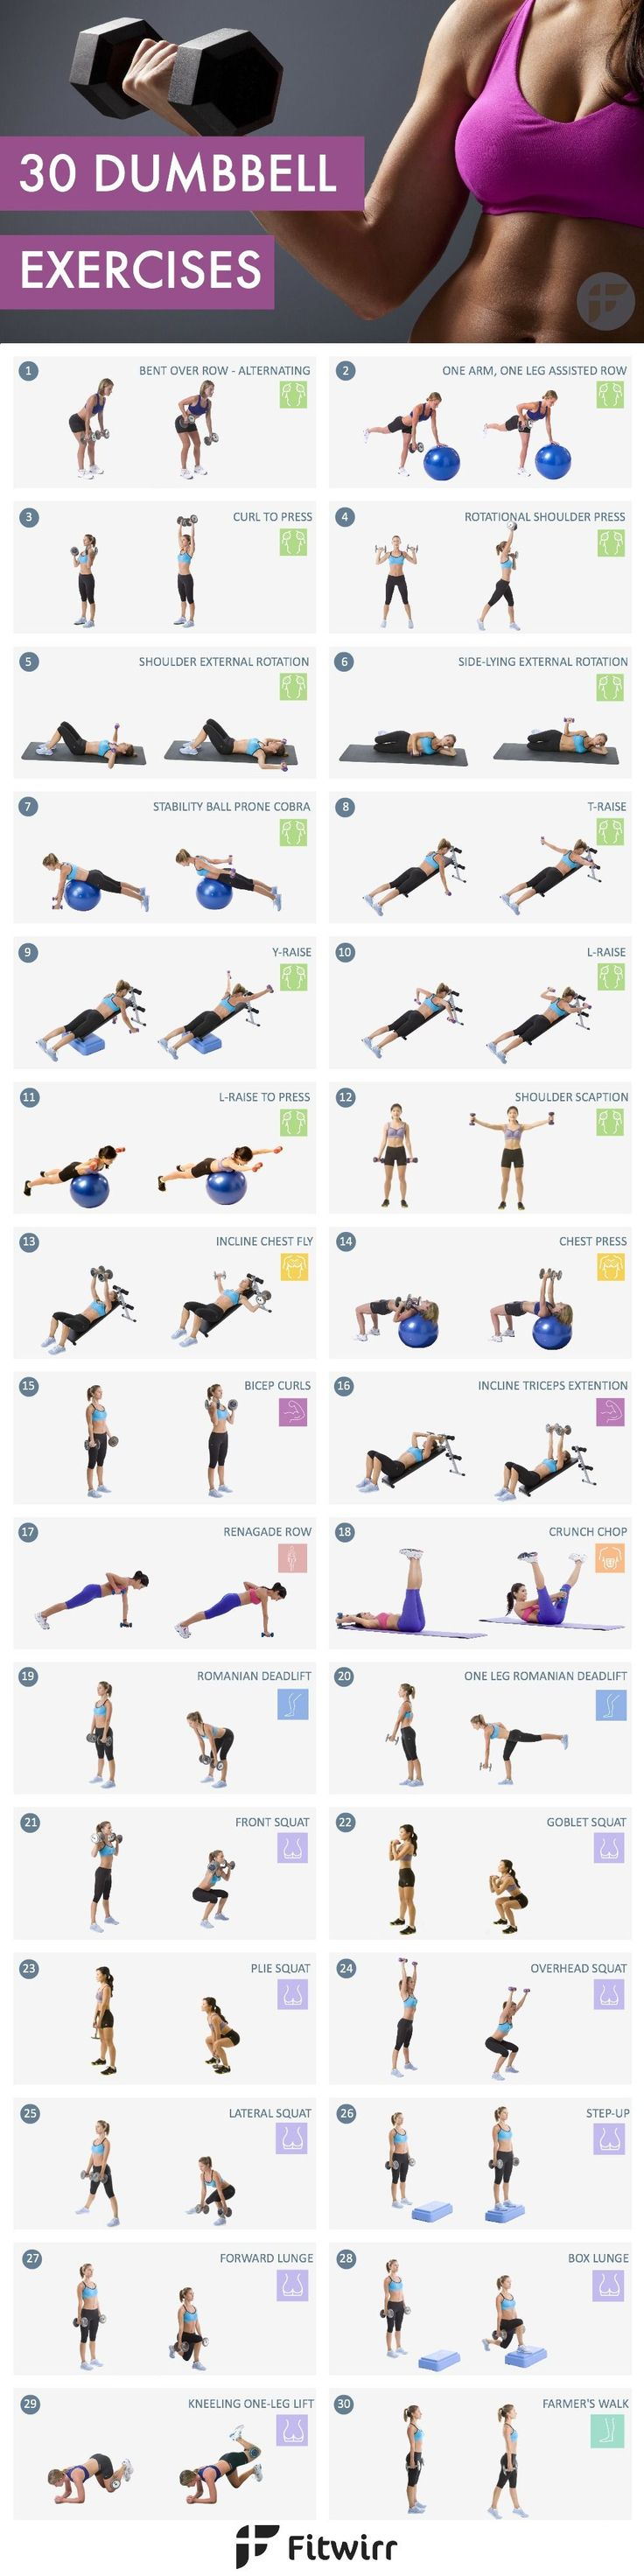 30 Must Know Dumbbell Exercises for Workouts at Home